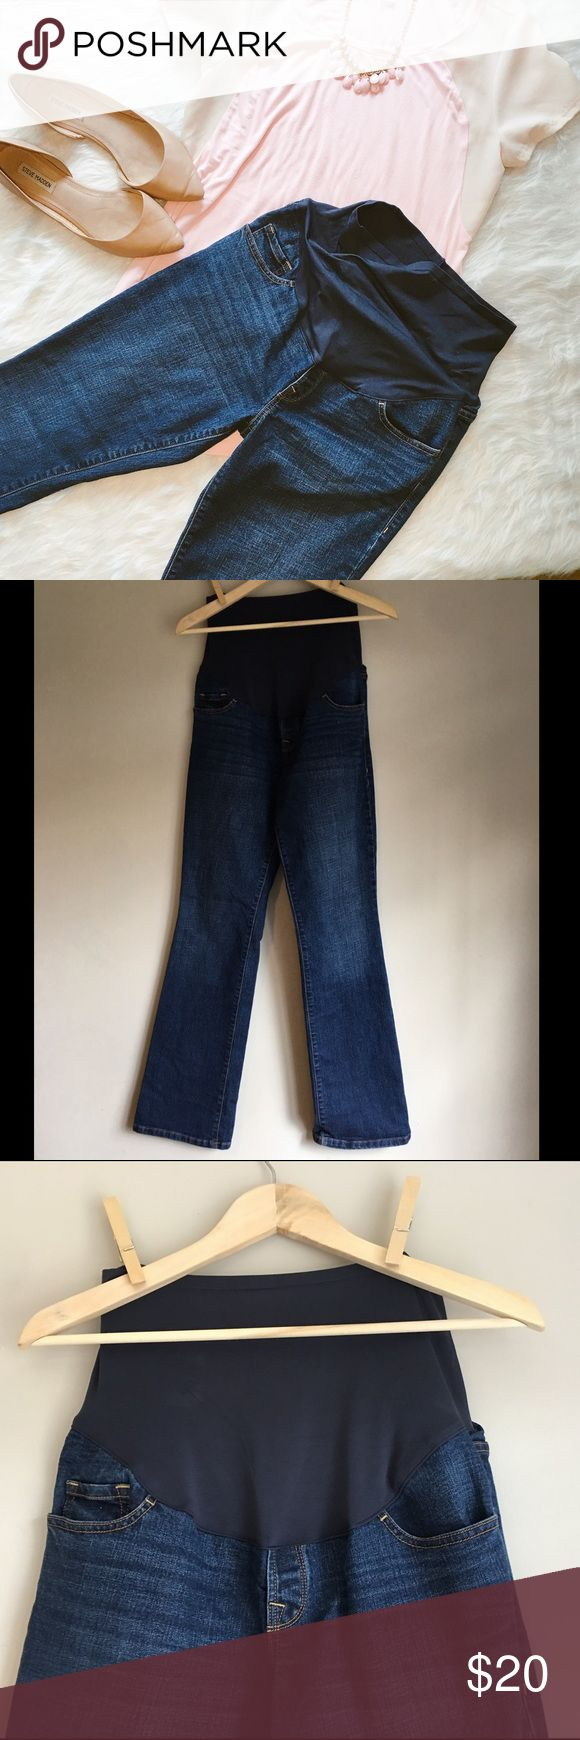 Old Navy Full Panel Maternity Jeans 8R Old Navy full panel maternity jeans. Dark Blue. Size 8 regular. Only worn a few times. Super comfortable. Relaxed fit. Boot cut. Old Navy Jeans Boot Cut